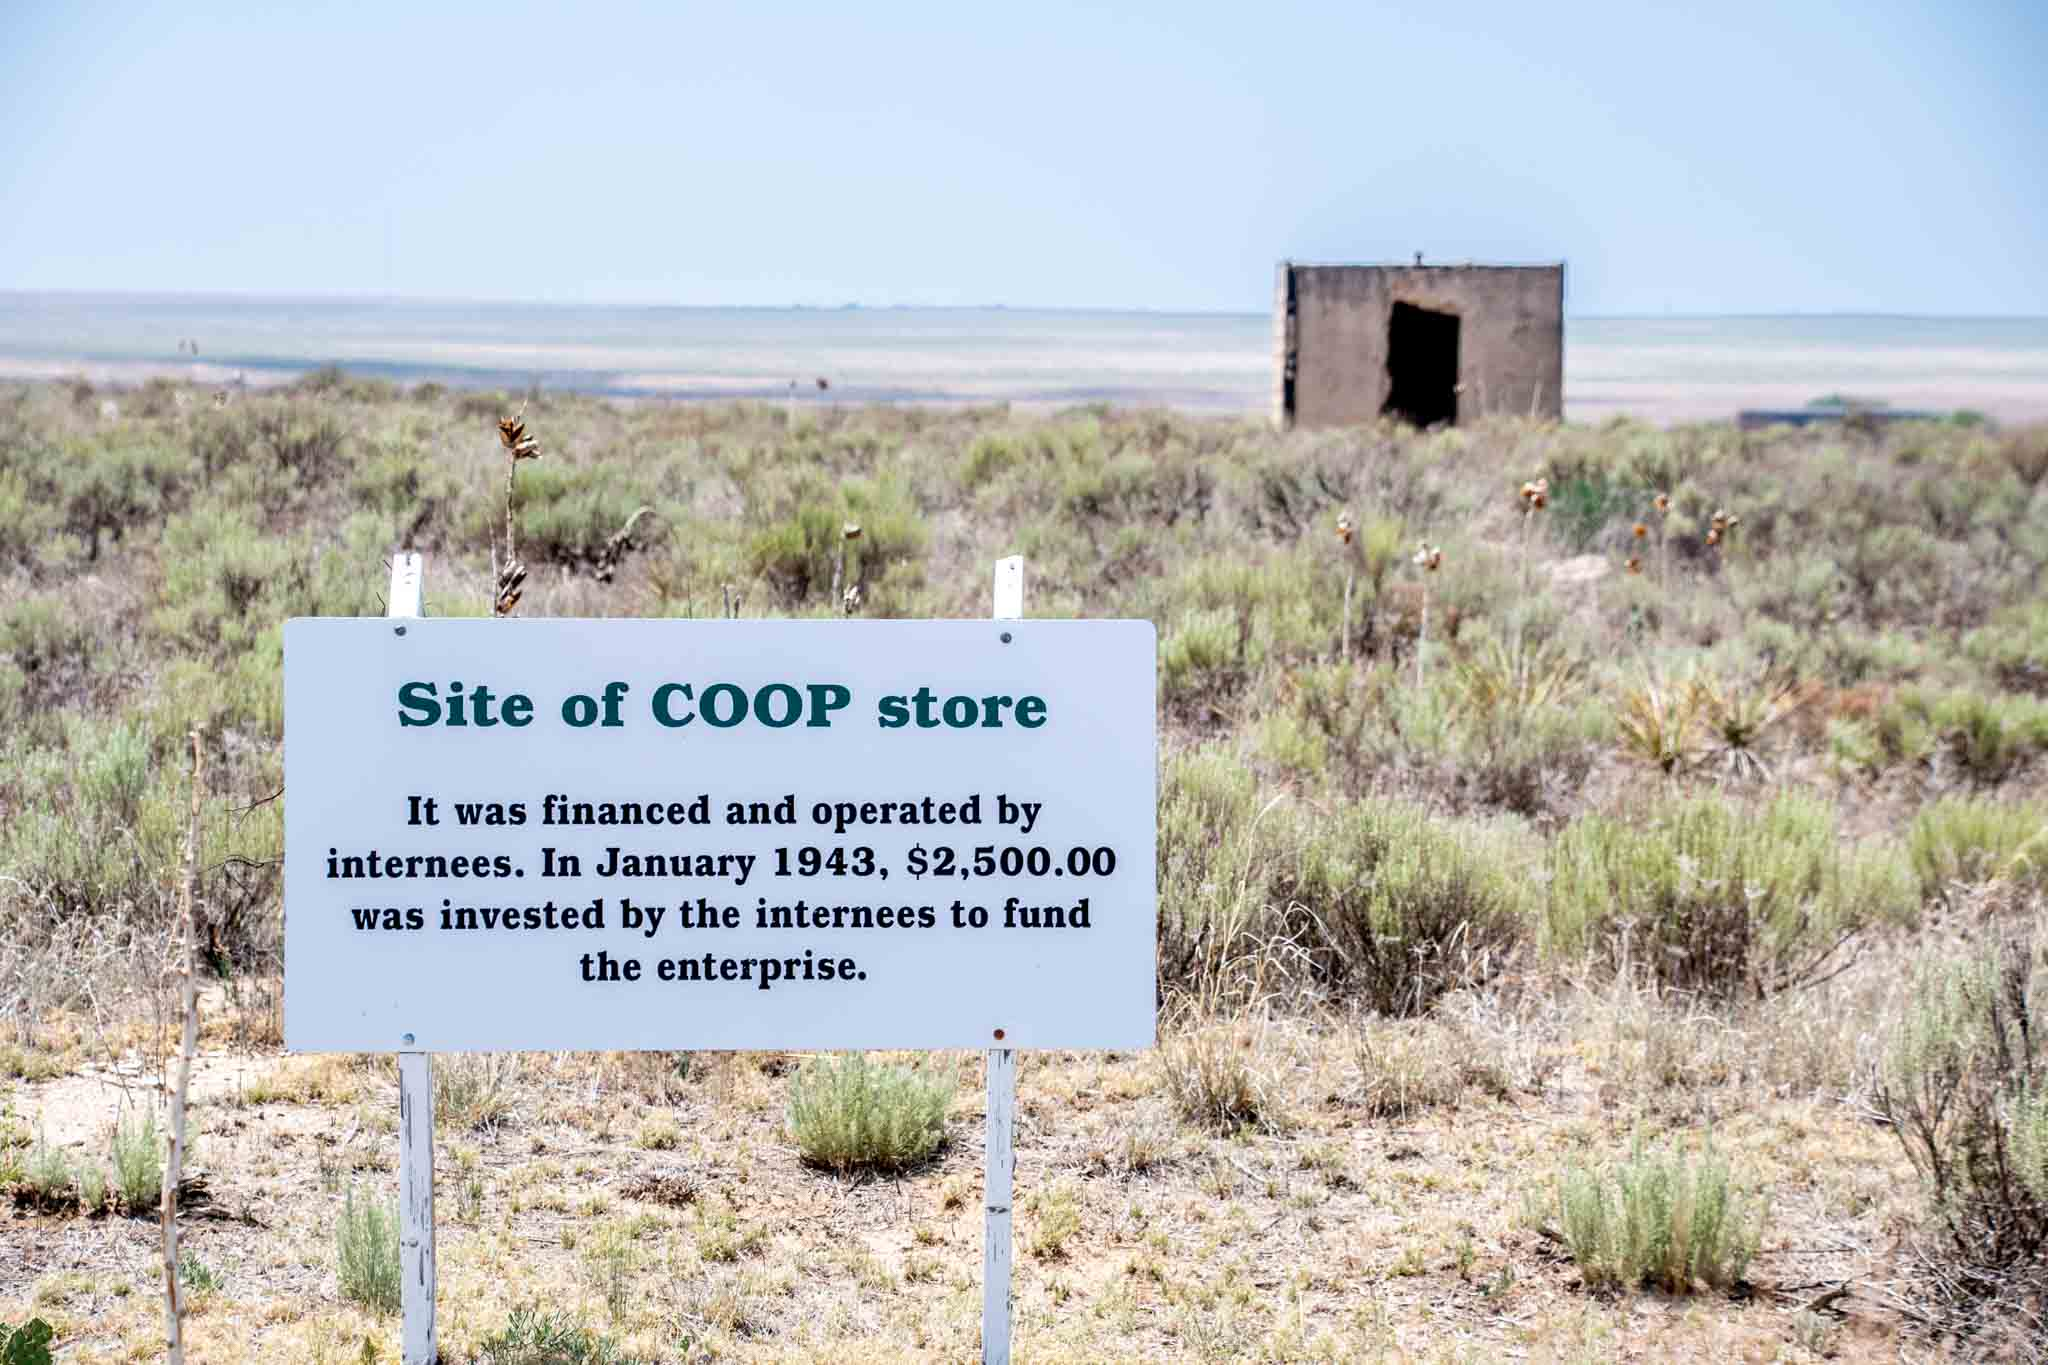 The coop storehouse and sign